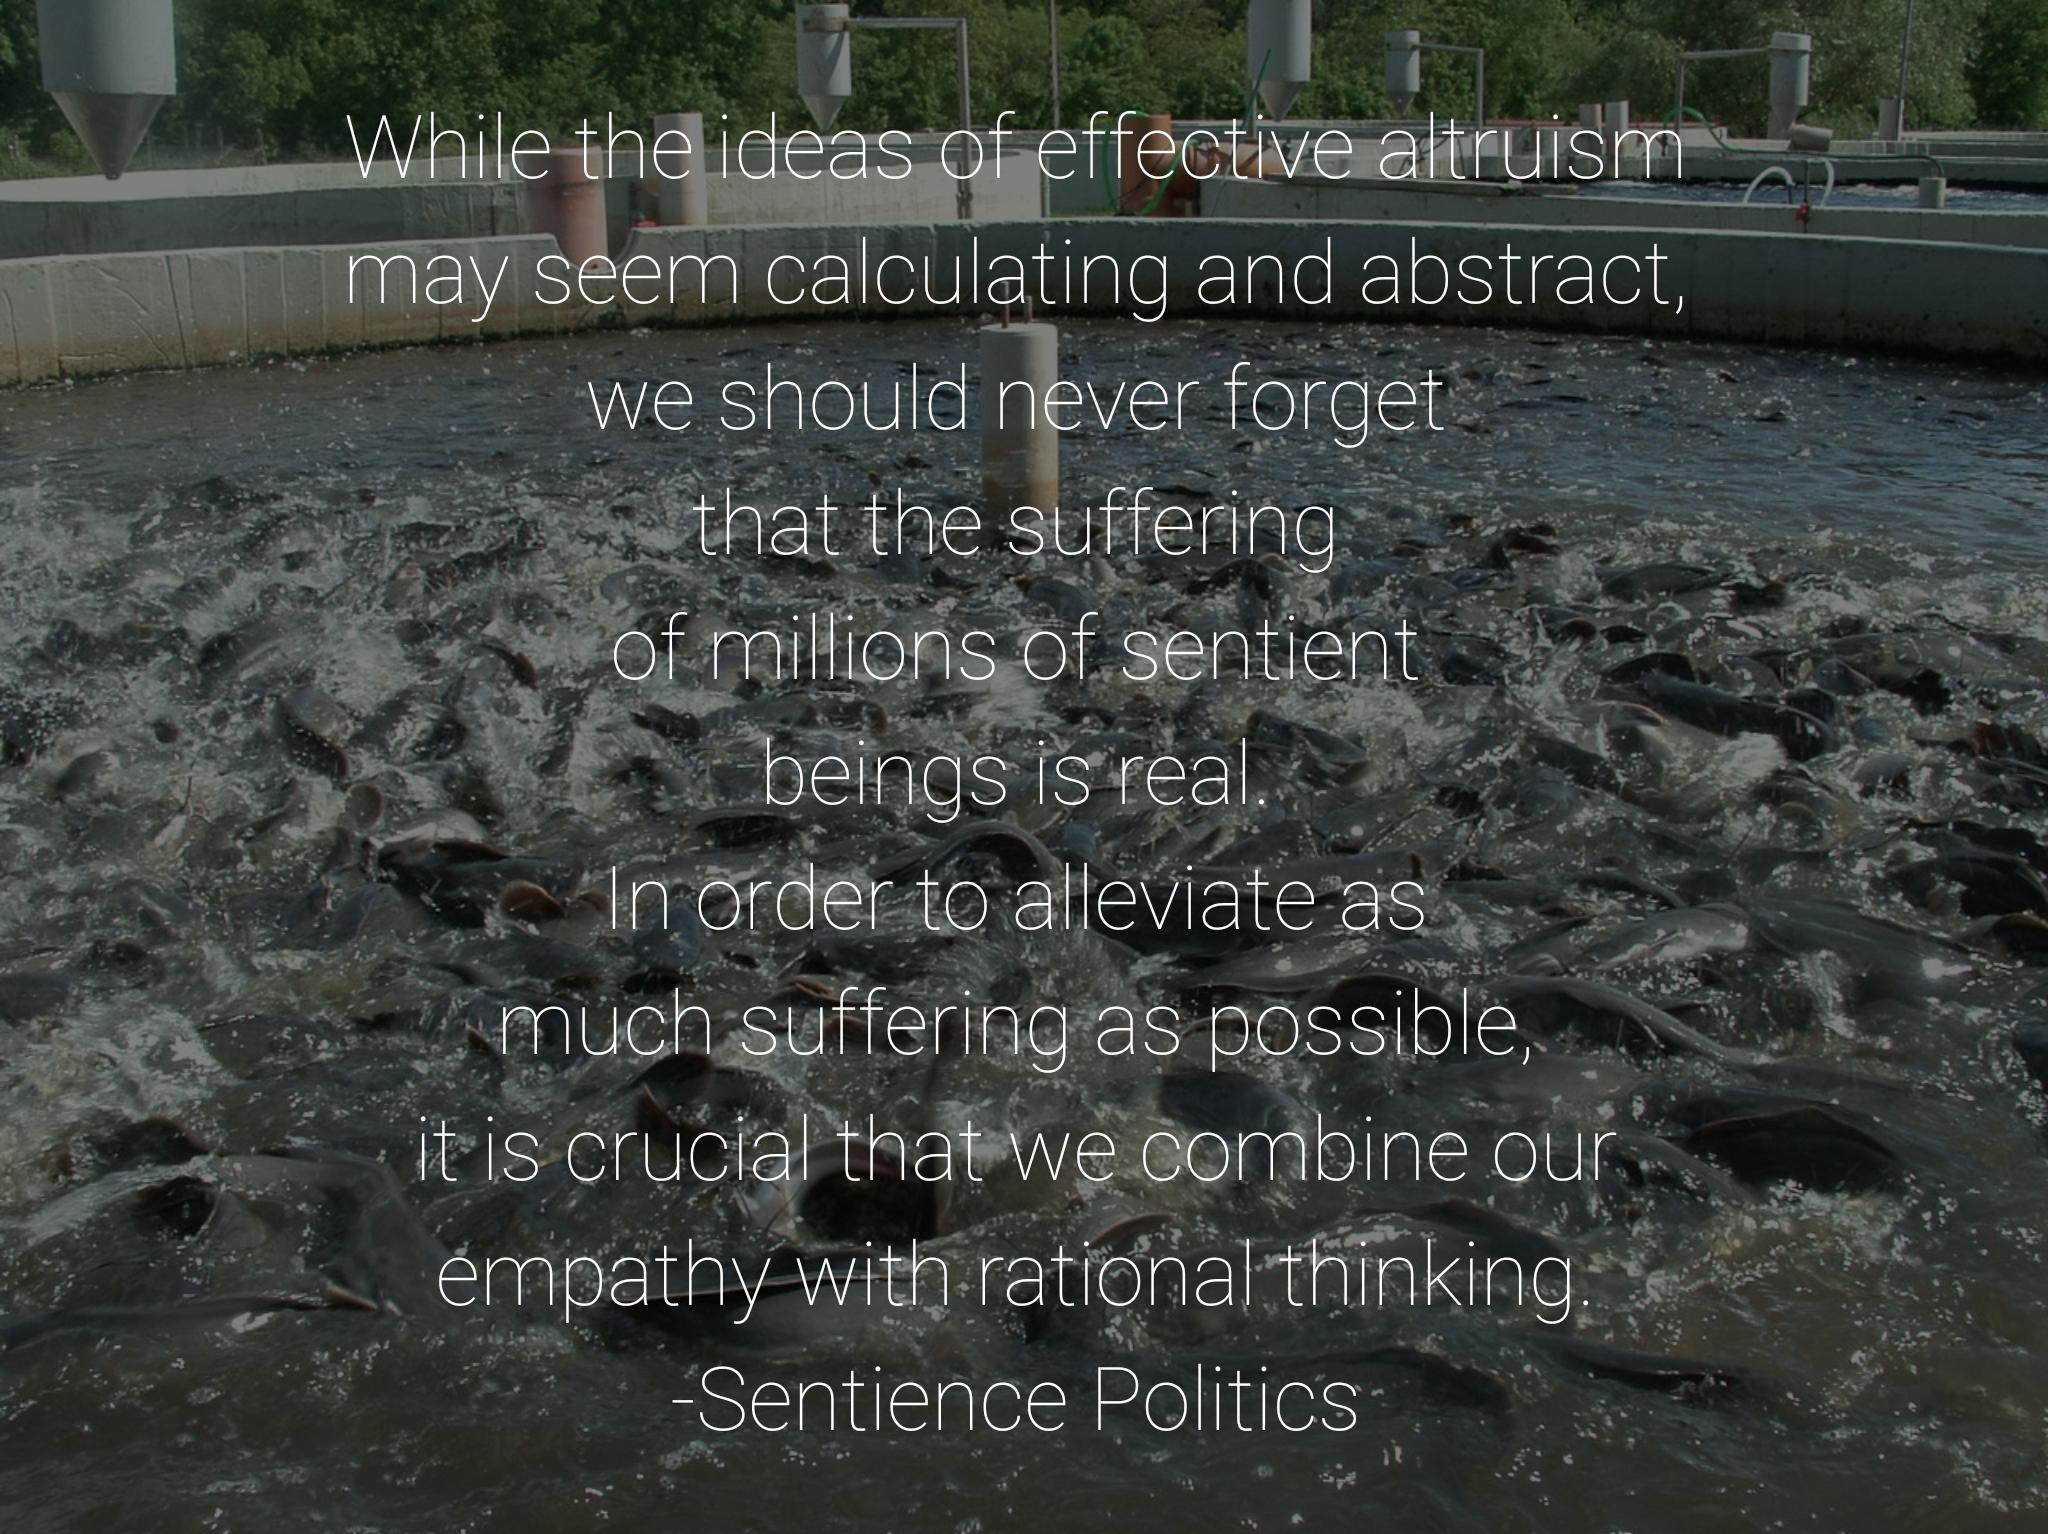 """While the ideas of effective altruism may seem calculating and abstract, we should never forget that the suffering of millions of sentient beings is real…"" -Sentience Politics [2048×1534][OC]"